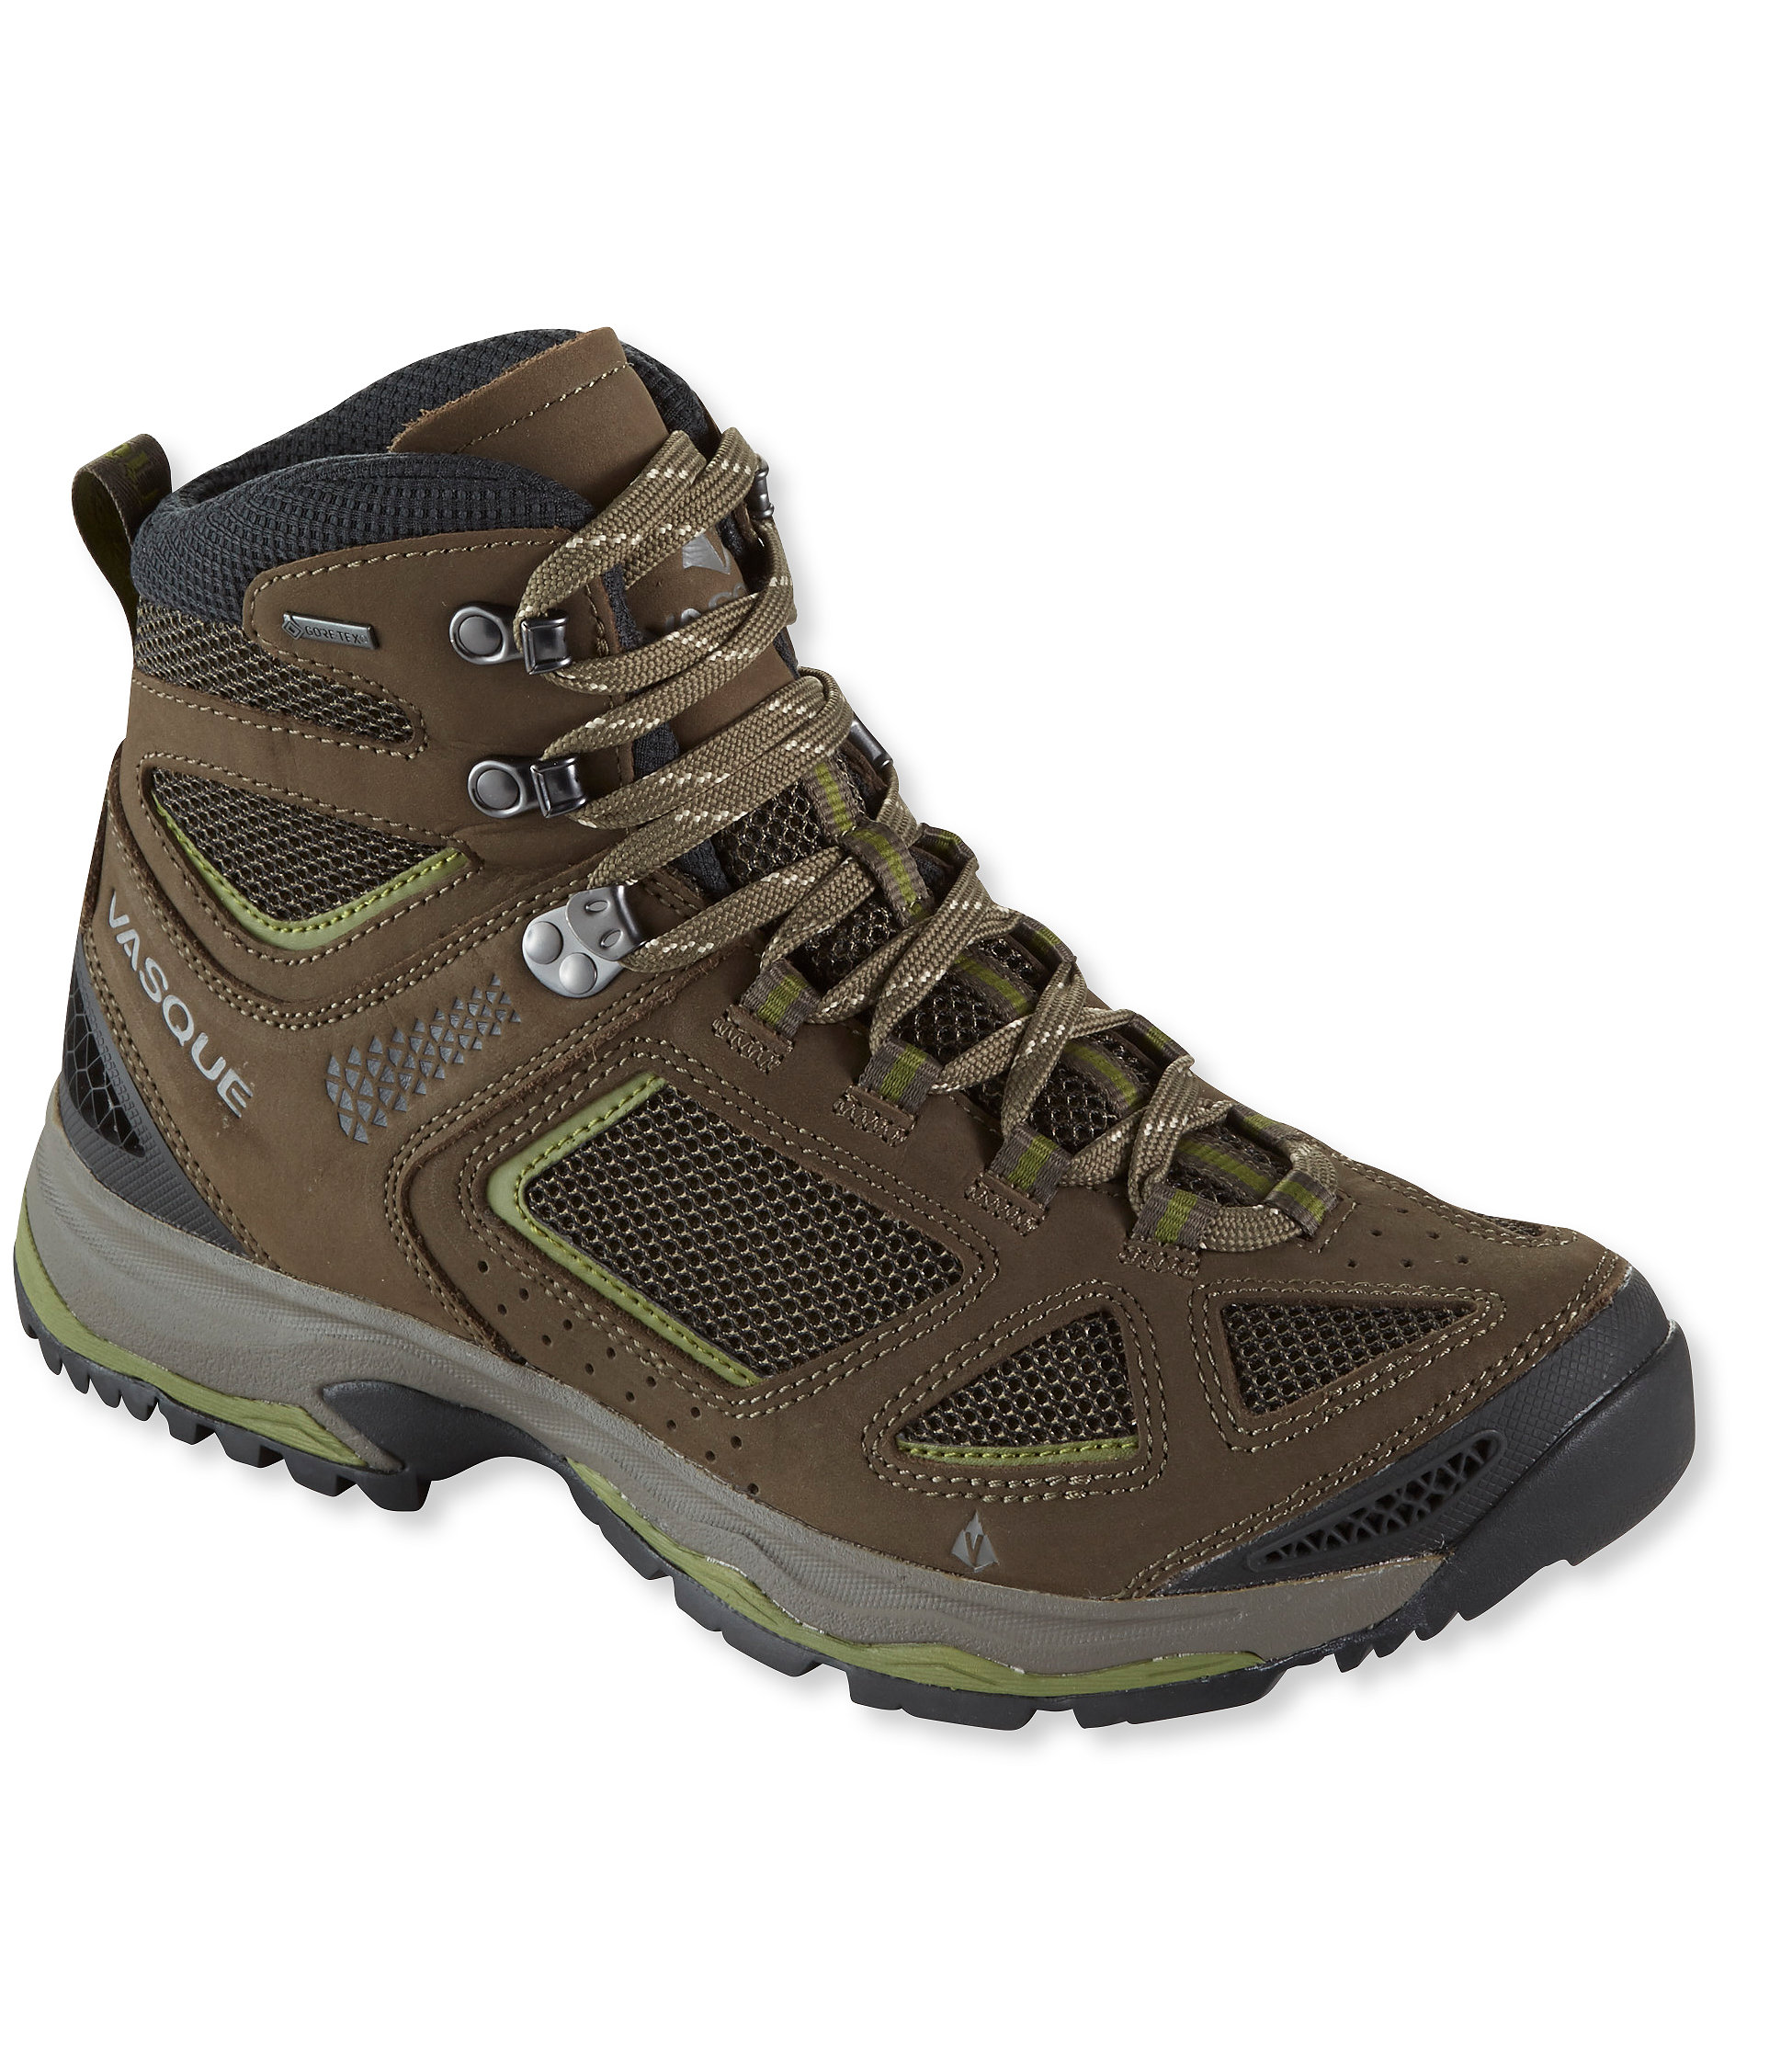 Vasque Breeze 3.0 GTX